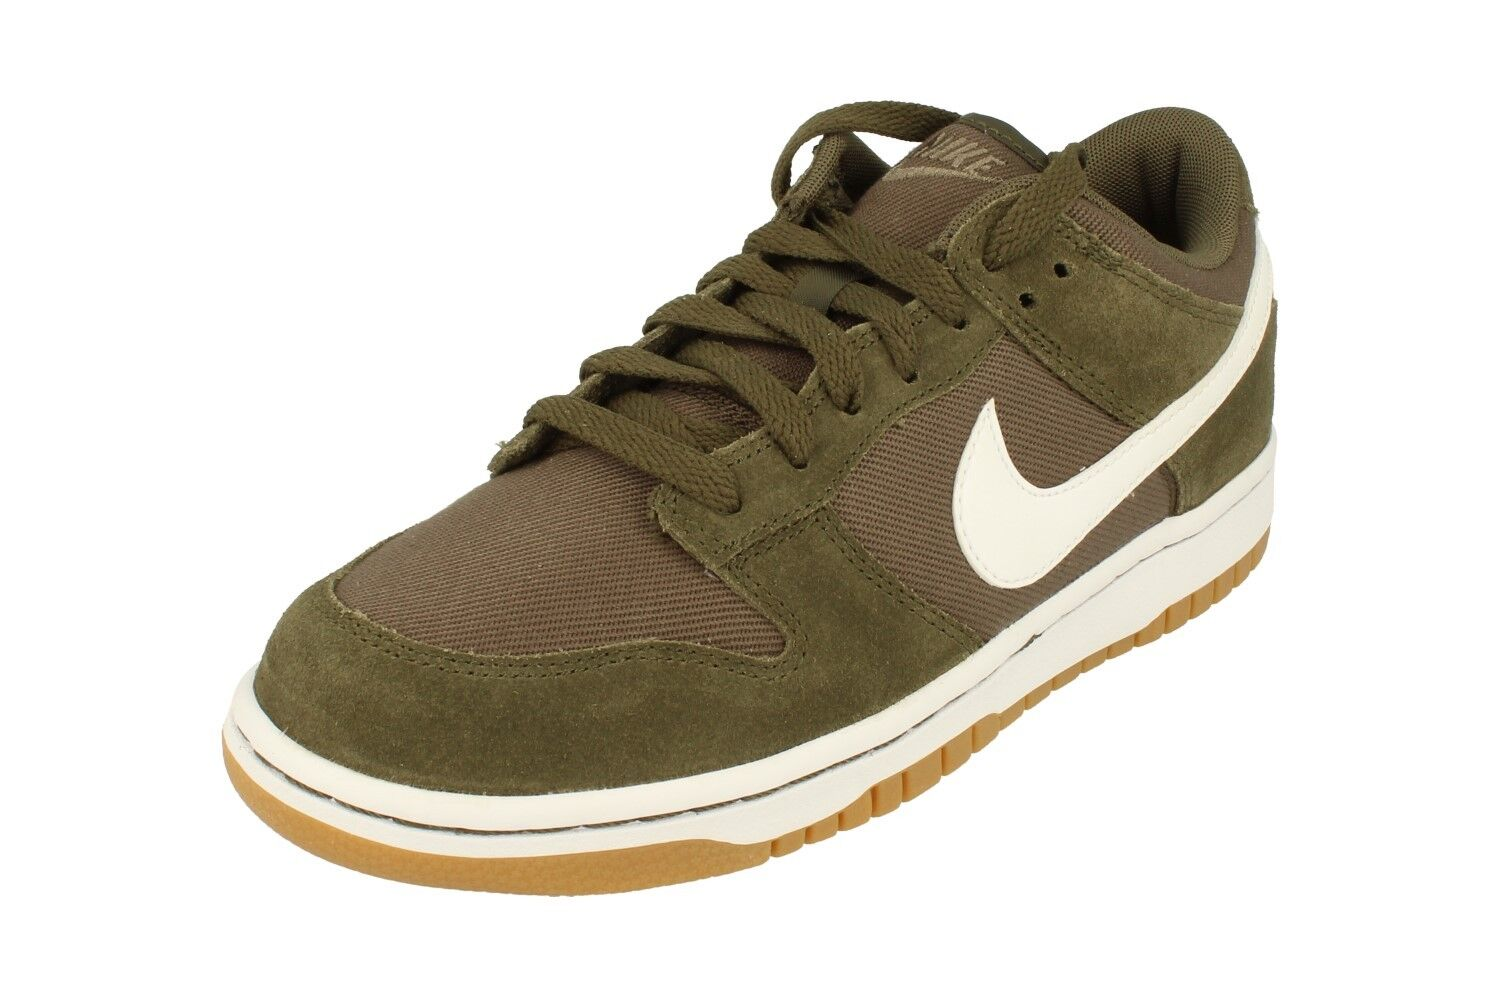 Nike Dunk faible Canvas homme Trainers Aa1056 Sneakers chaussures 300